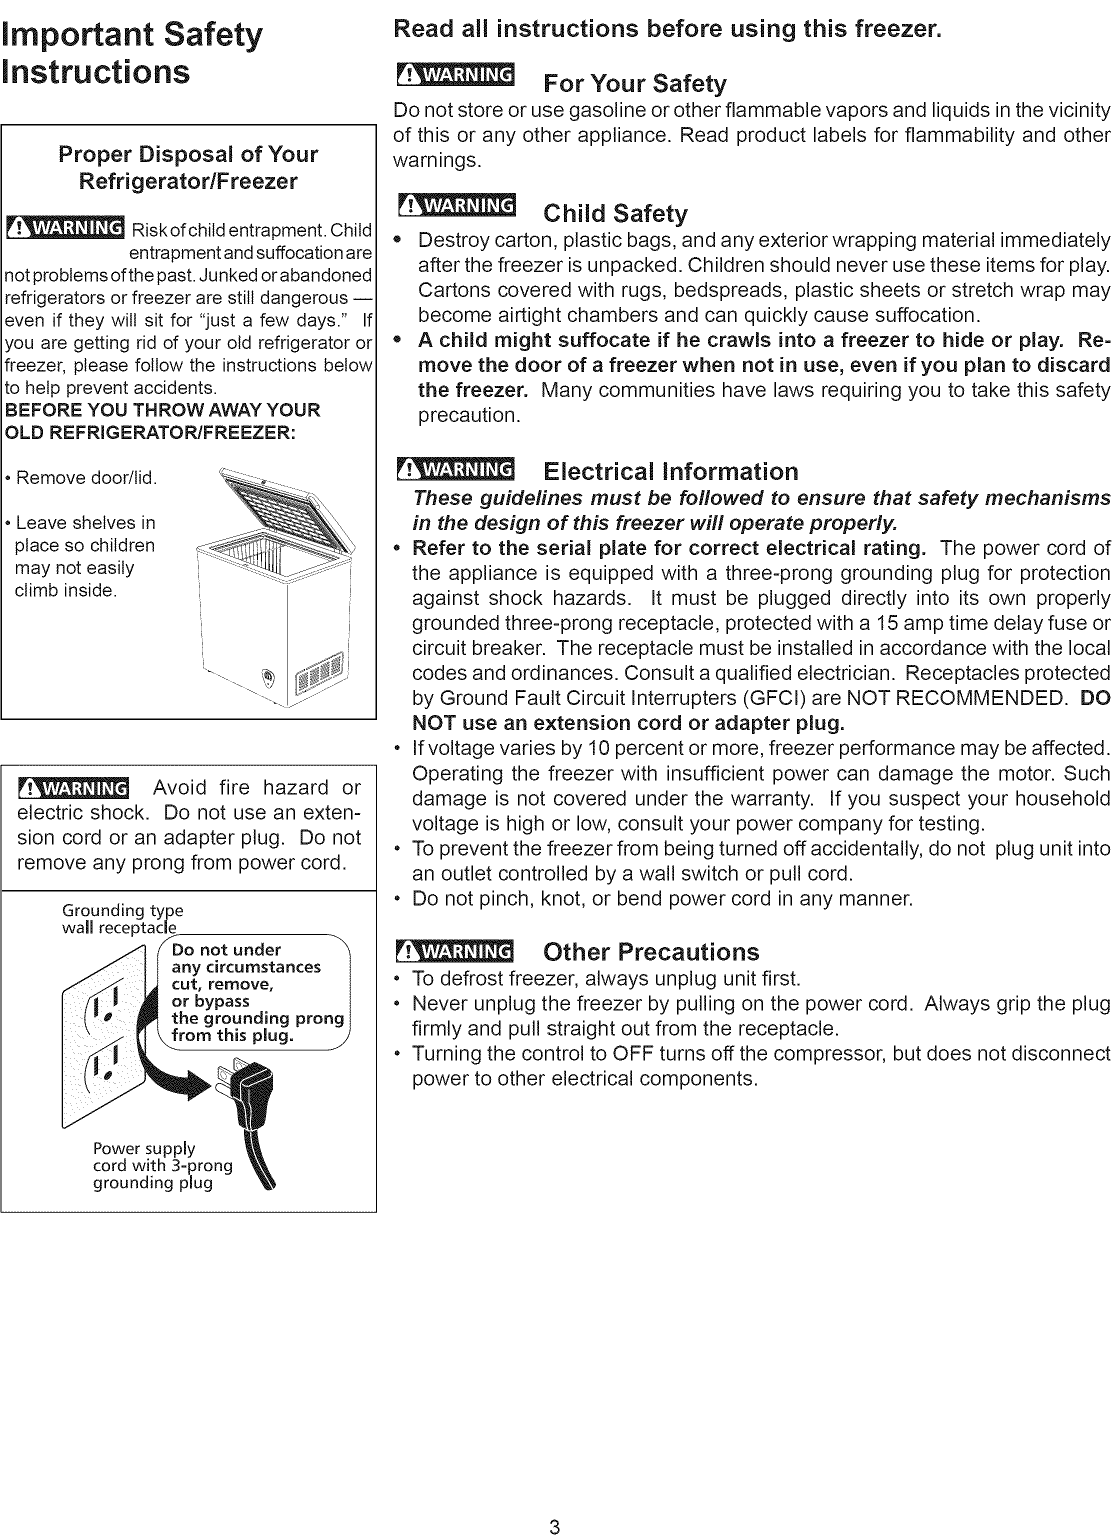 Crosley Cfc05lw User Manual Freezer Manuals And Guides L1002477 Frigidaire Chest Wiring Diagram Page 3 Of 9